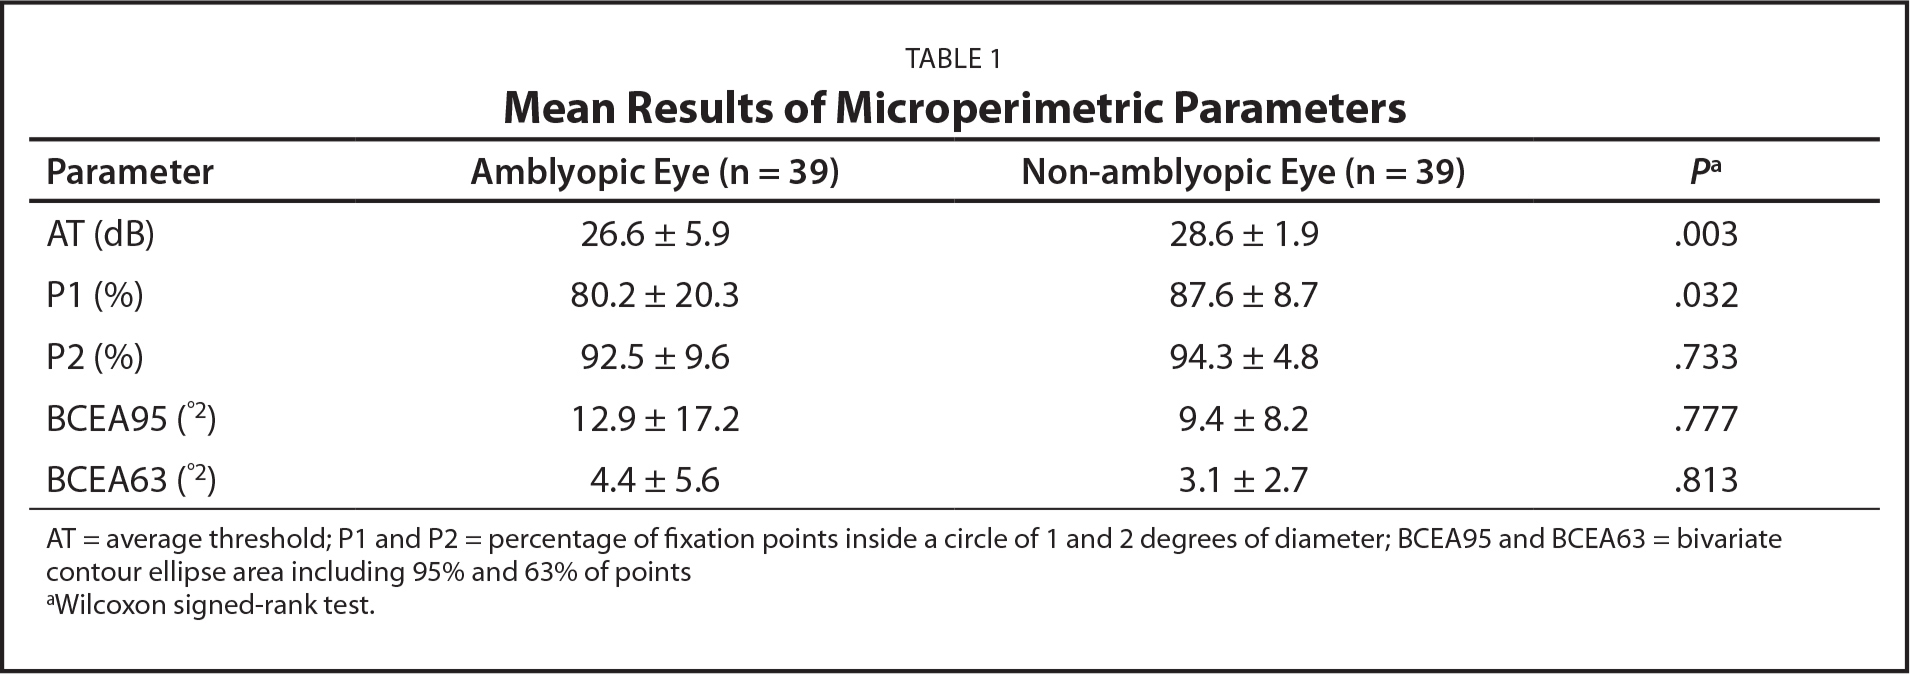 Mean Results of Microperimetric Parameters